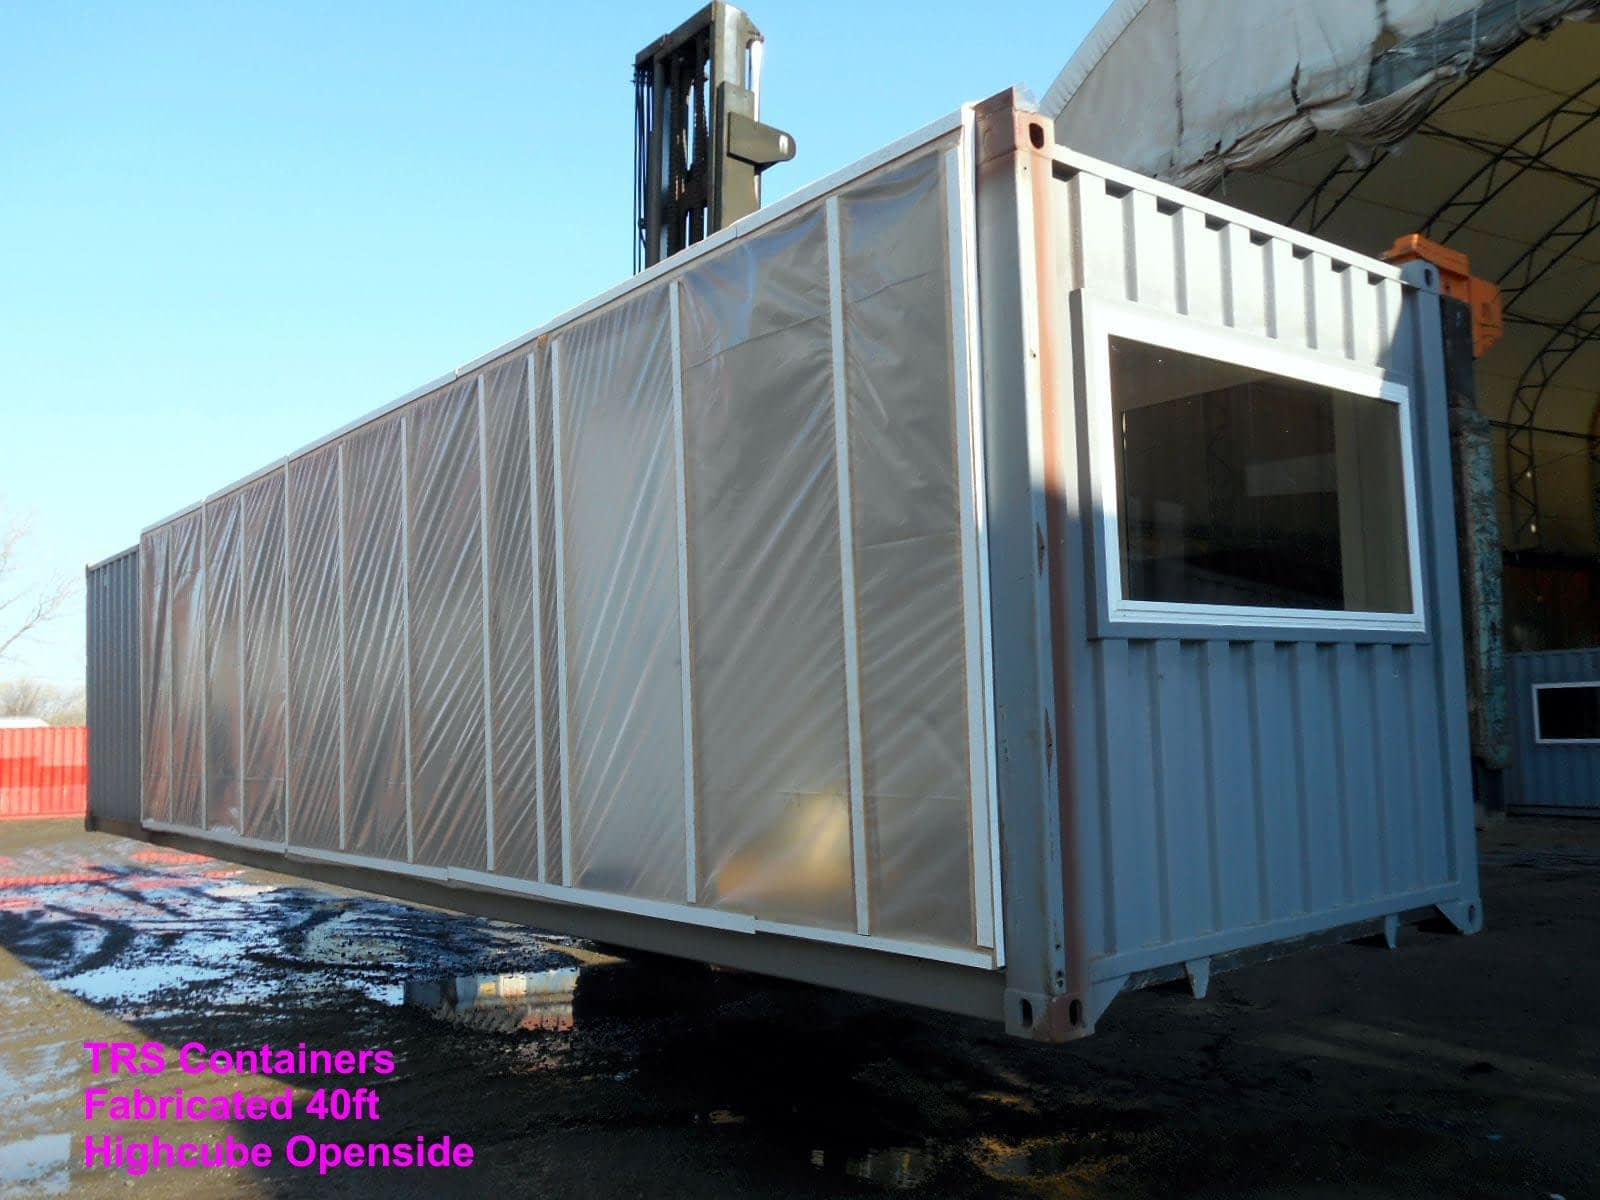 TRS Containsr performs fabrication work to convert 20 ft and 40 ft long containers into multi-functional structures